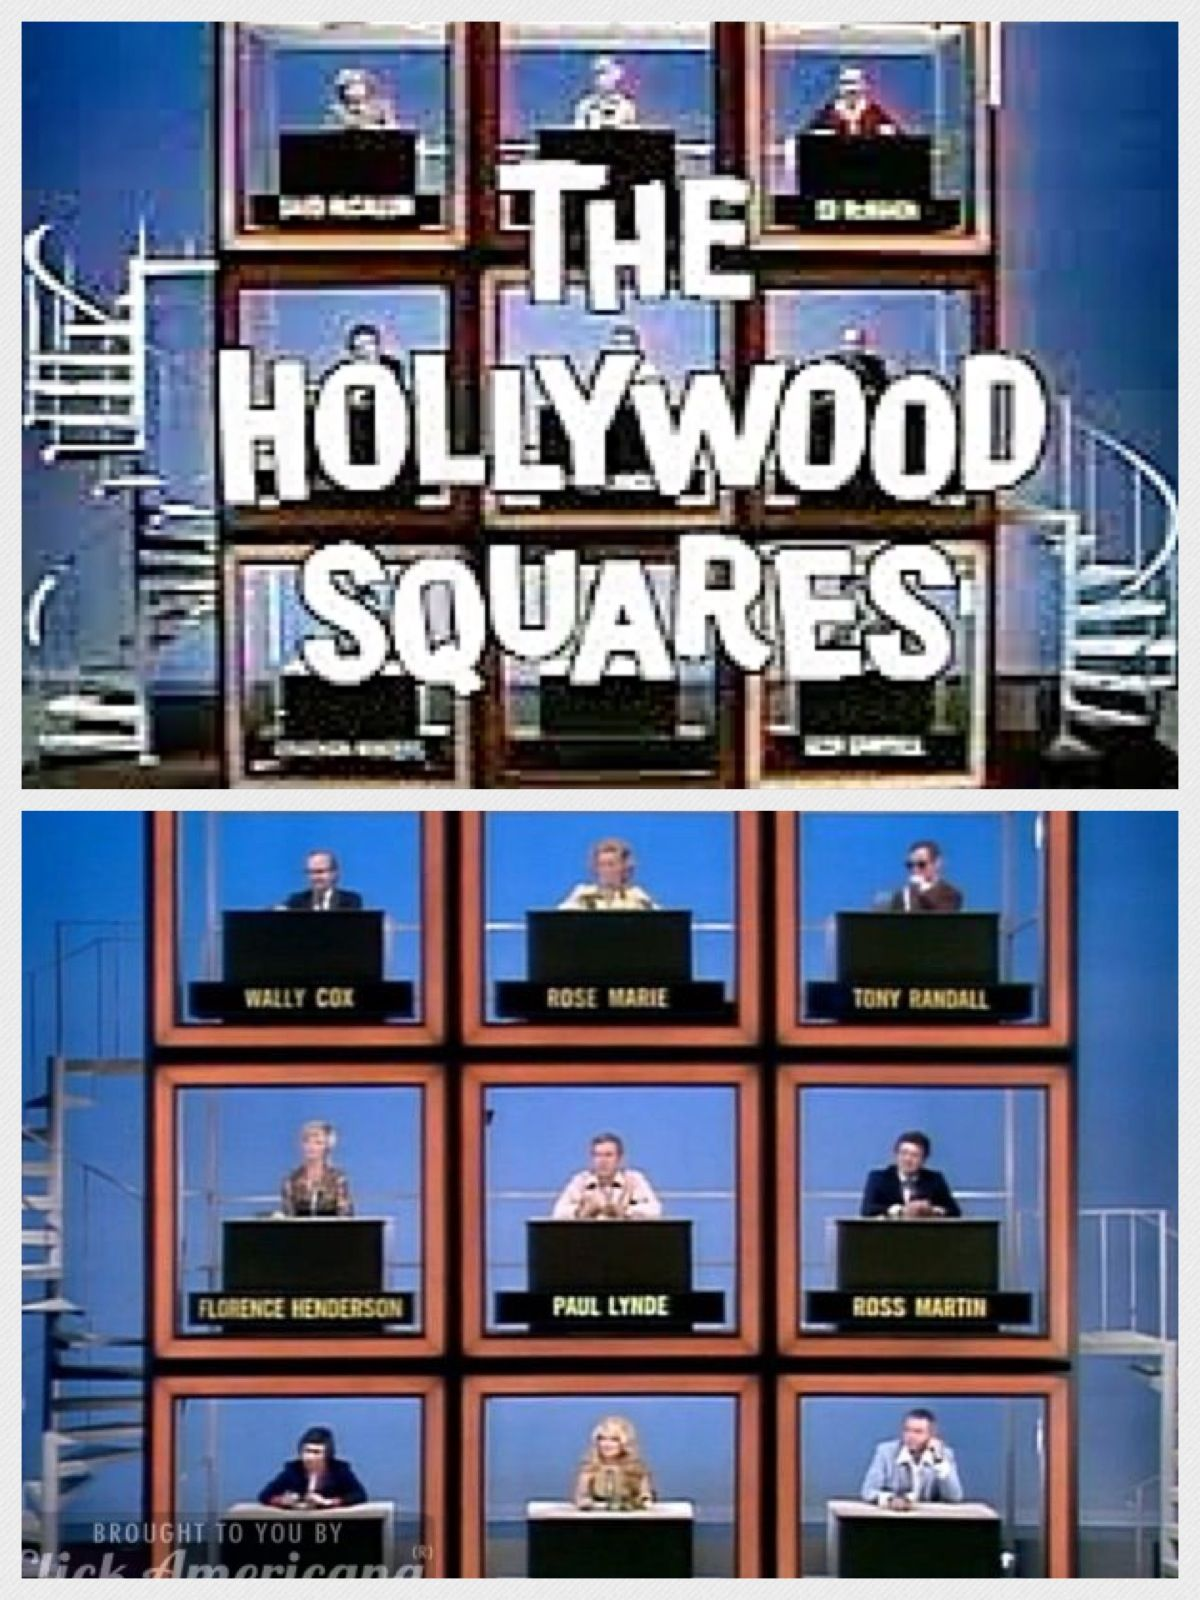 The Hollywood Squares (1965-1982). The long-running celebrity tic-tac-toe game show features celebrities placed in strategic positions. They are asked questions and the contestants have to judge whether the answer is correct or a lie. The first contestant to successfully get three Xs or Os in a row wins, as is the norm with tic-tac-toe.